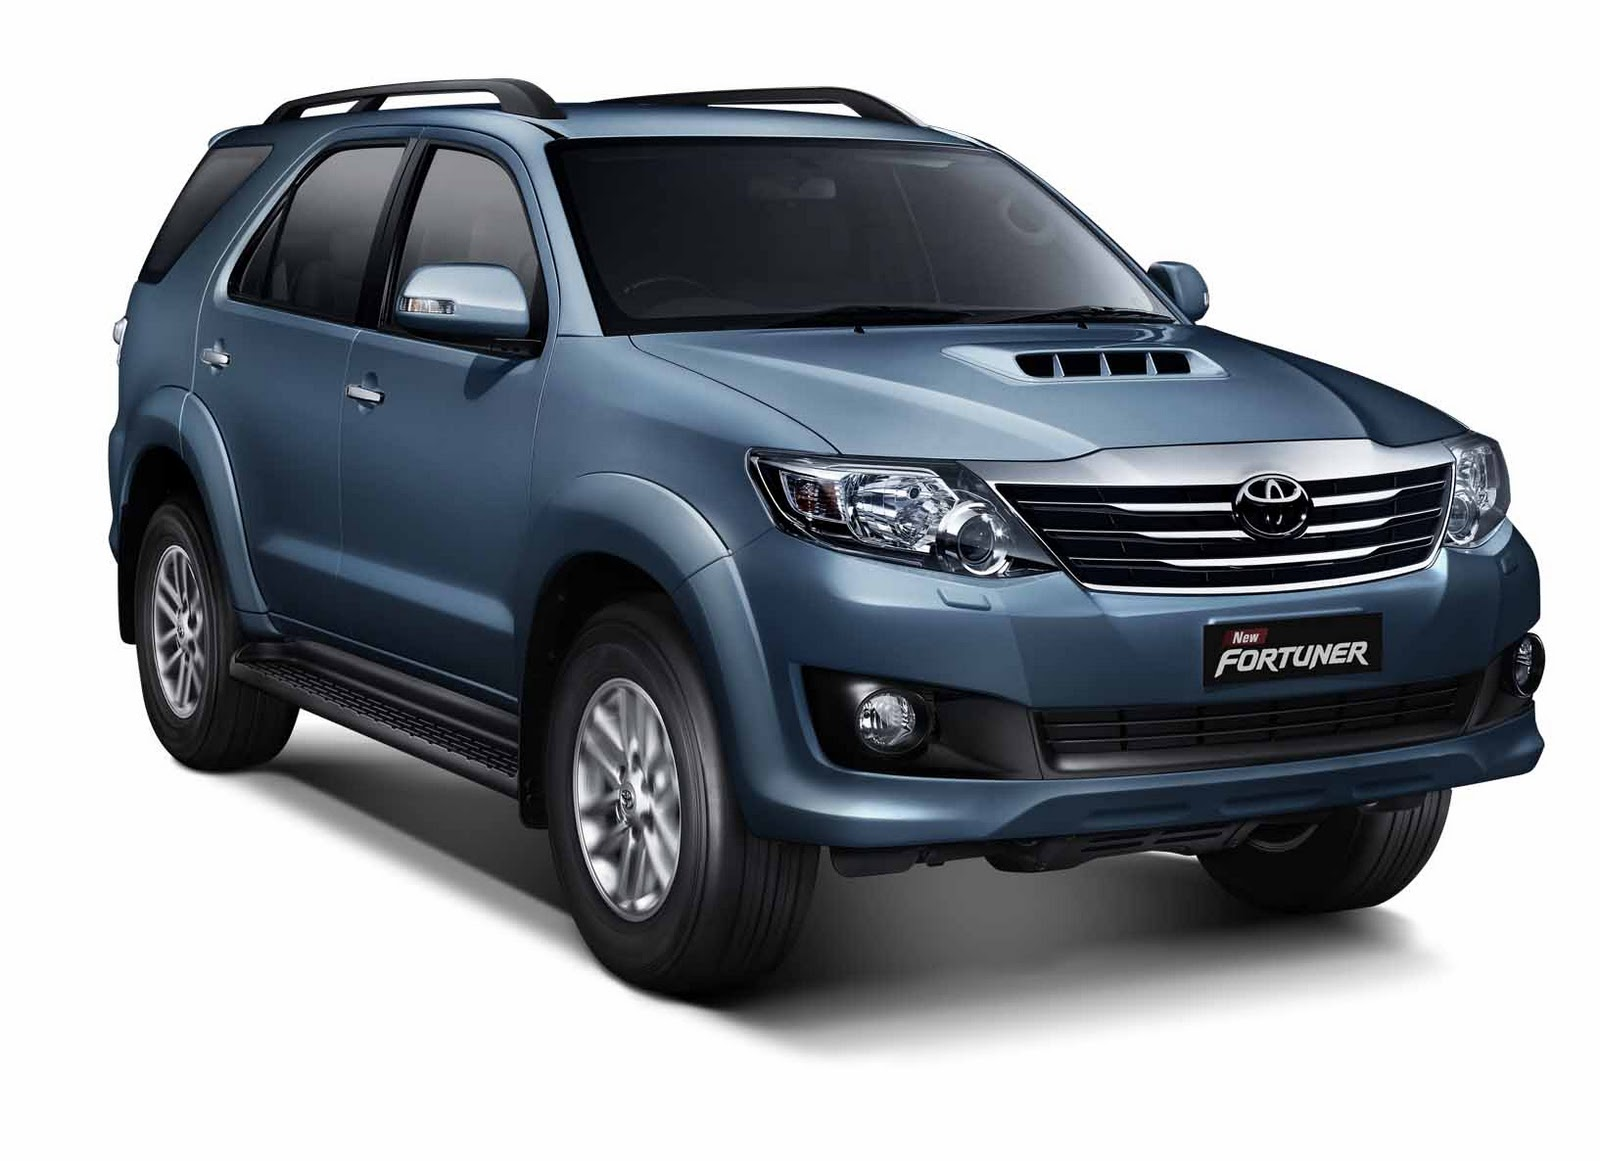 Toyota Fortuner 2WD MT Front Five Doors Picture View